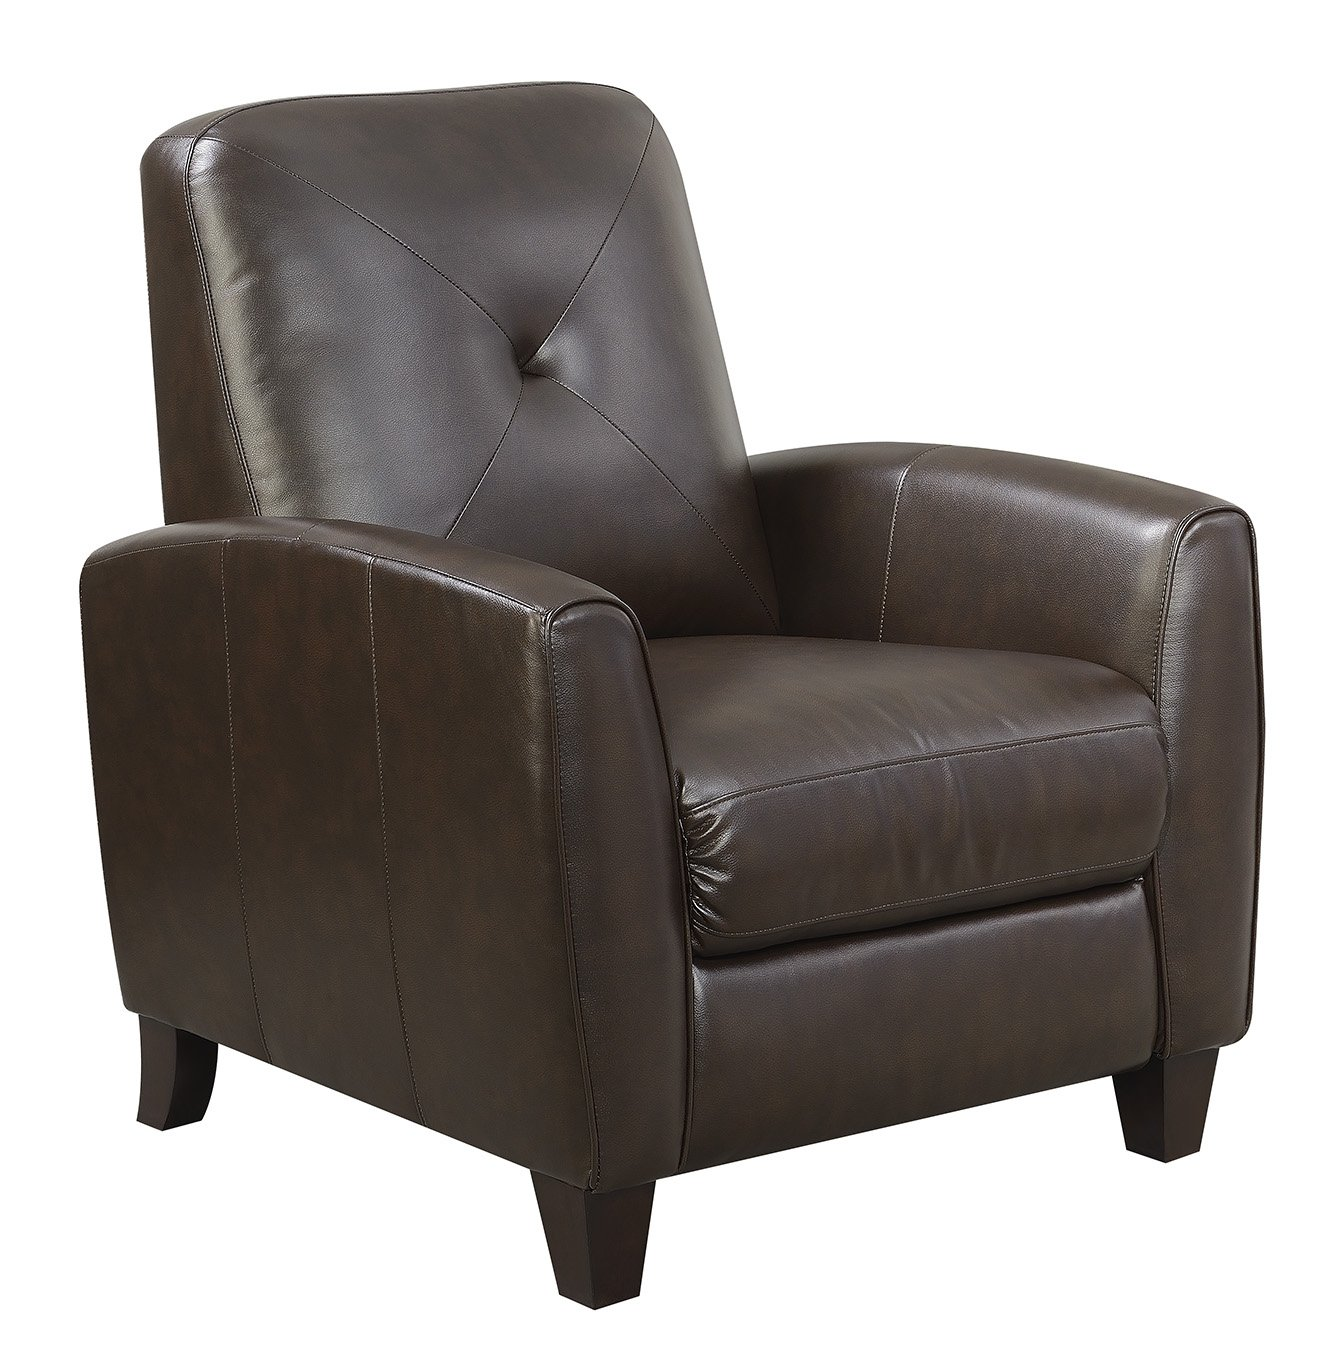 Bryson Transitional Leather Look Press-Back Recliner with Pocketed Coil Seating Black Color Mstar MNY2681-95-51274PU